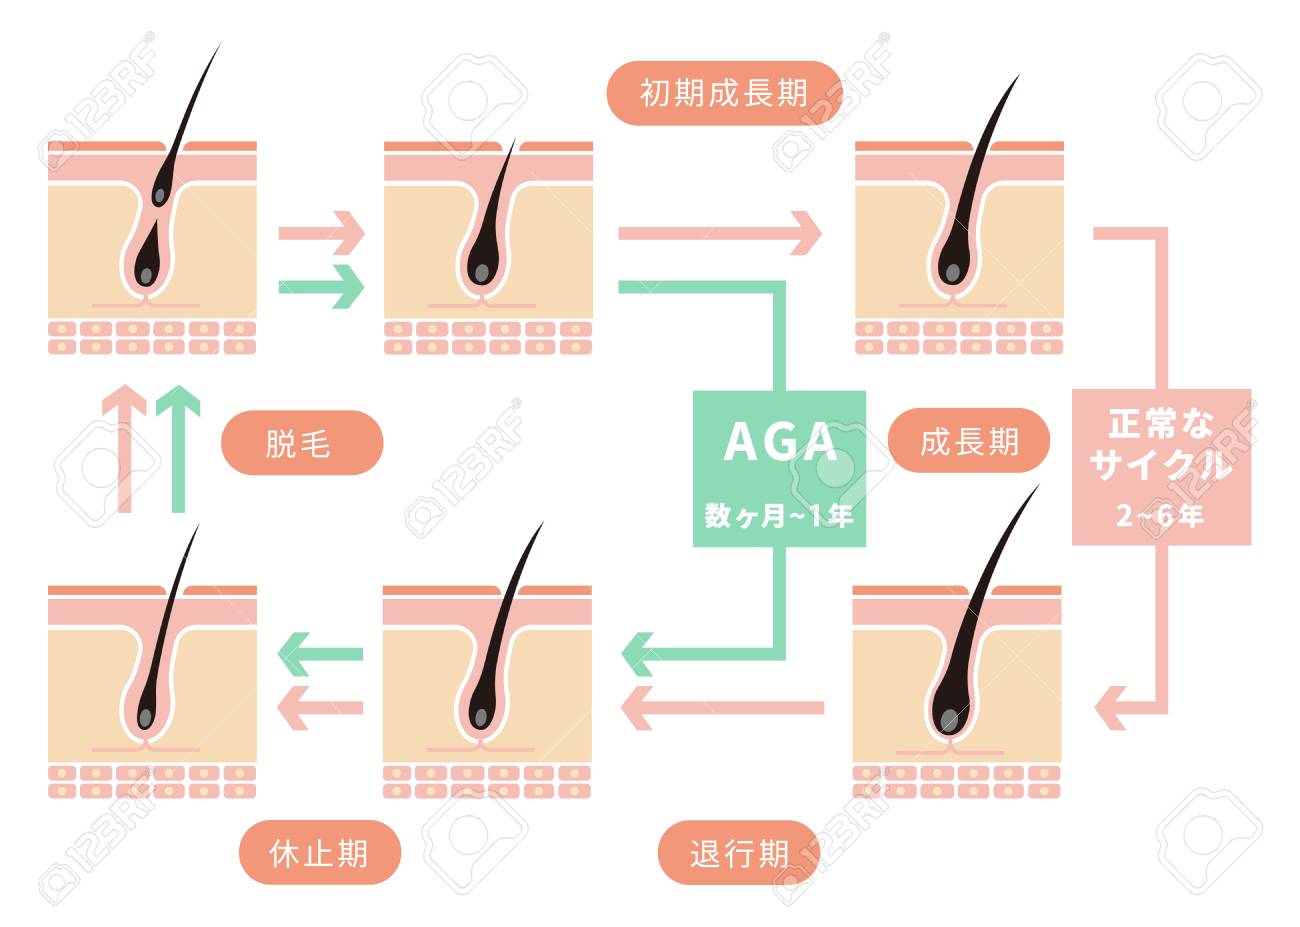 Comparative illustration of normal hair cycle and AGA (androgenetic alopecia). - 97893335